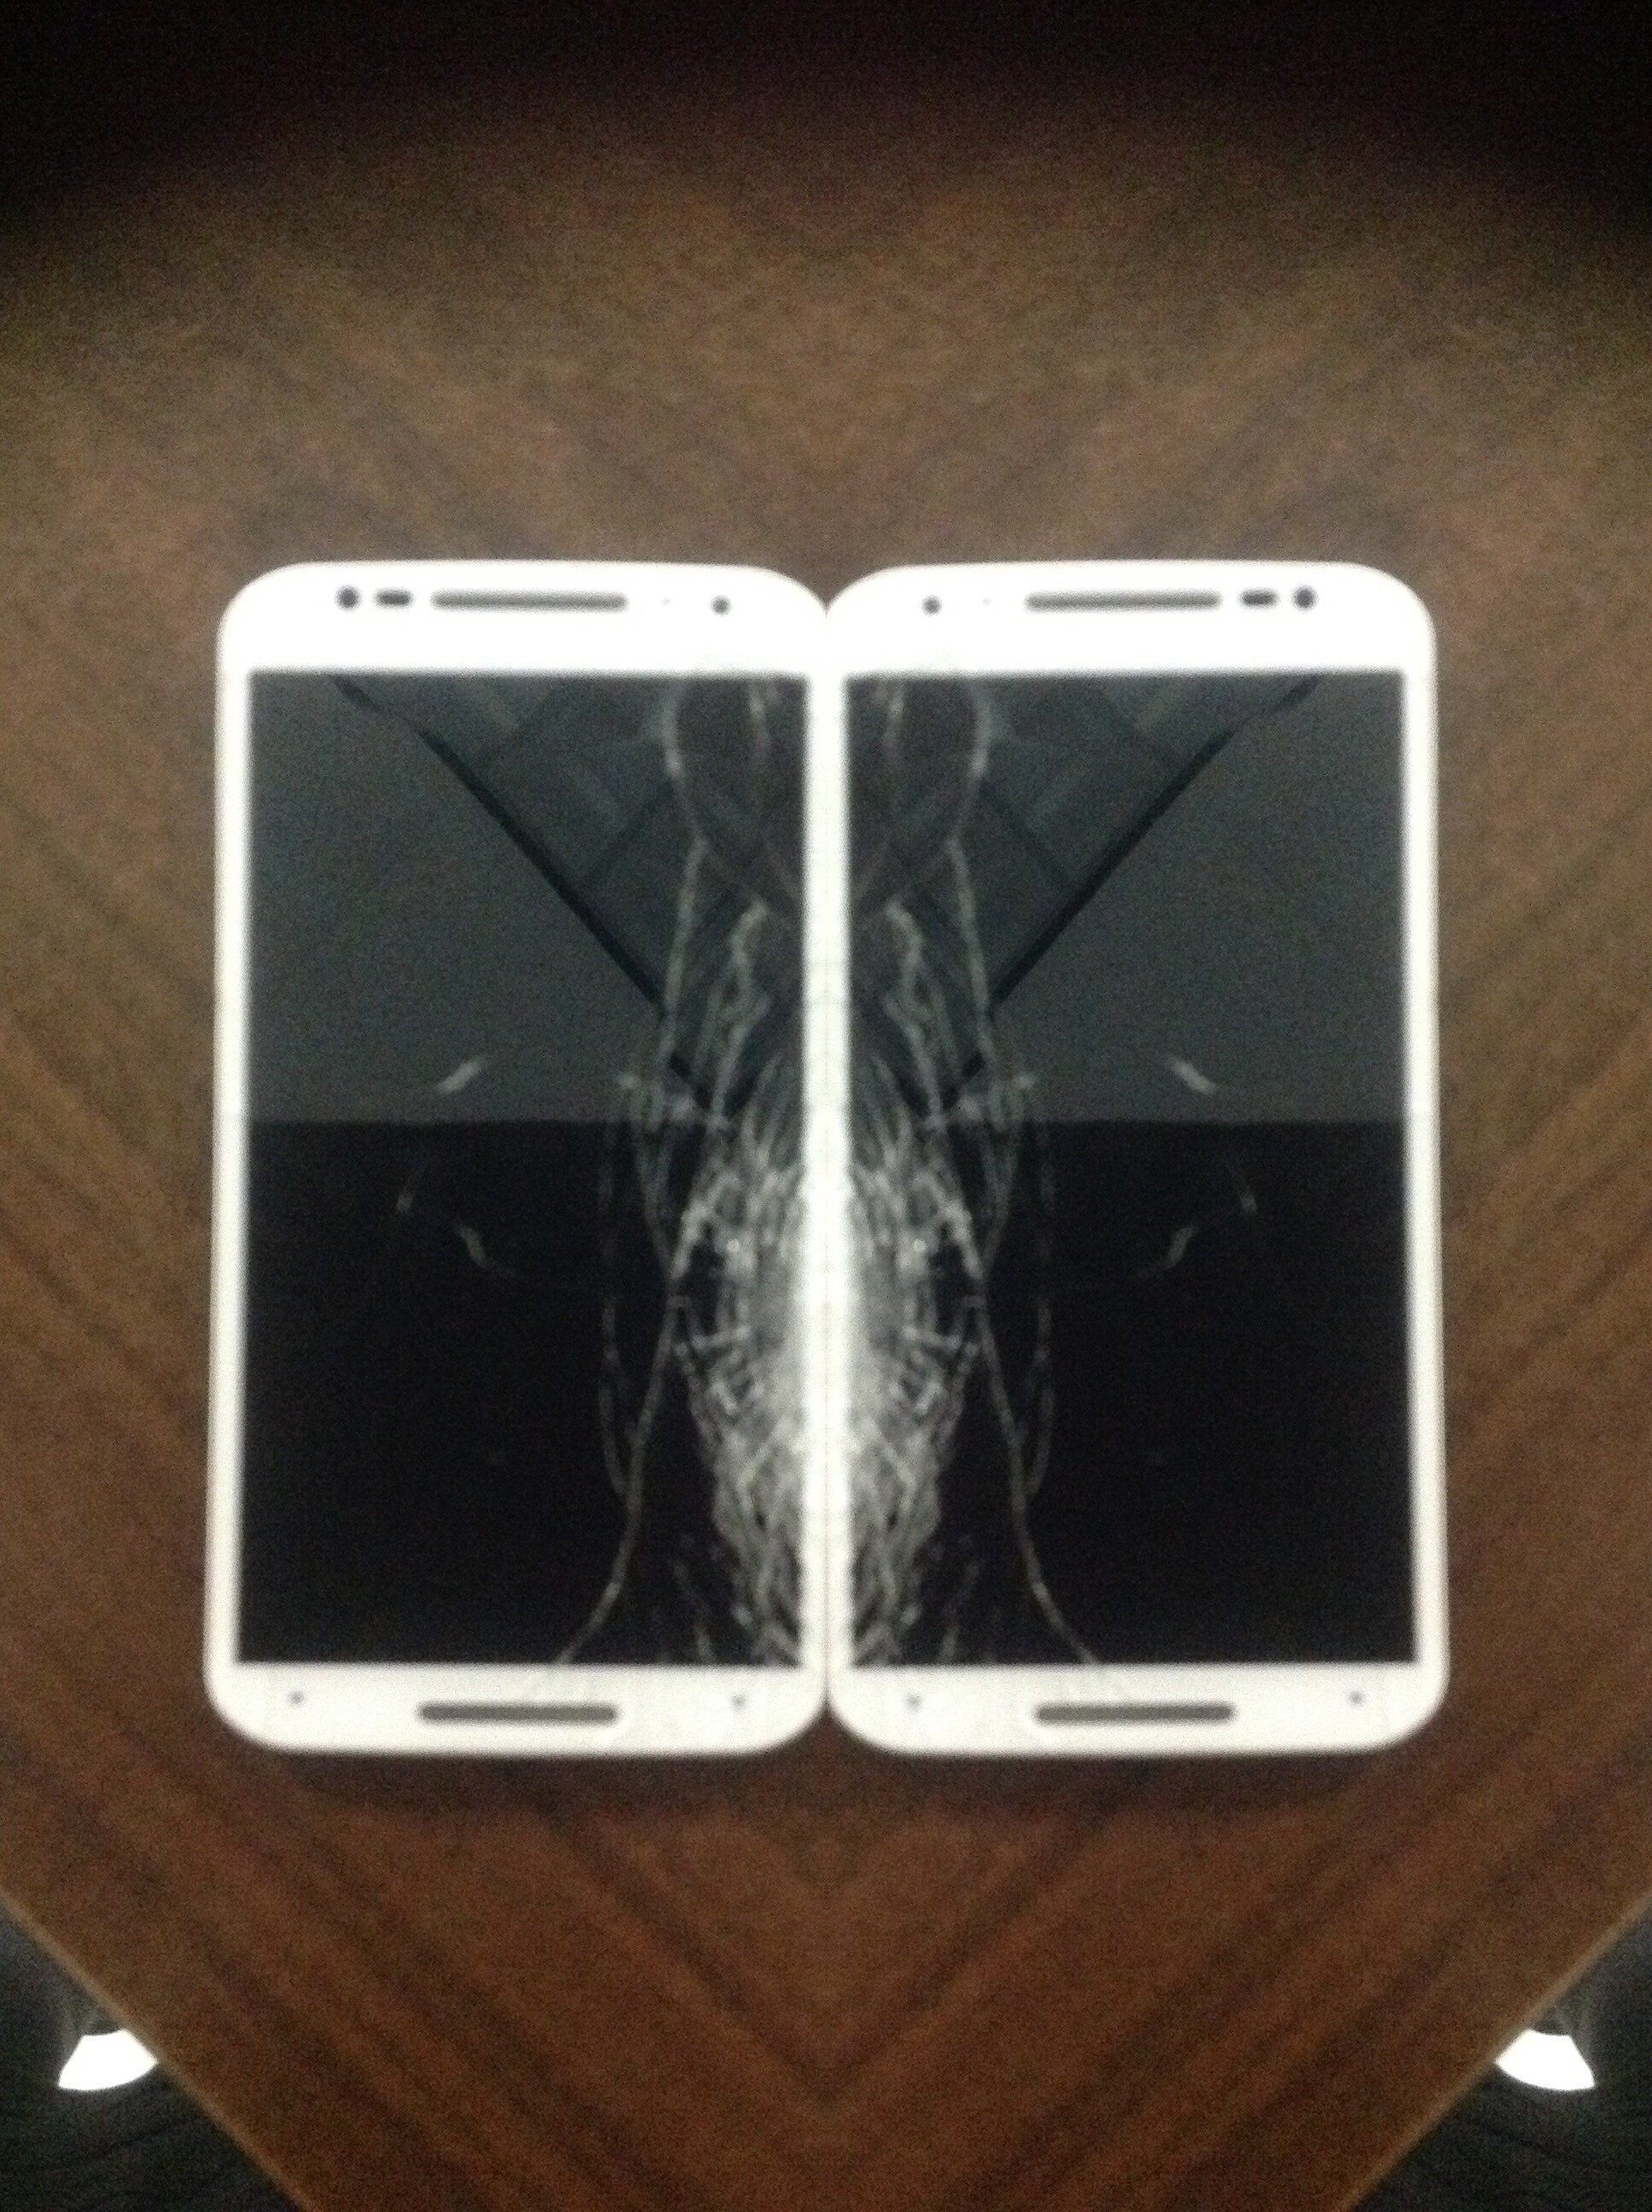 A double image of a white phone with a cracked screen; phones are mirrored image side-by-side.